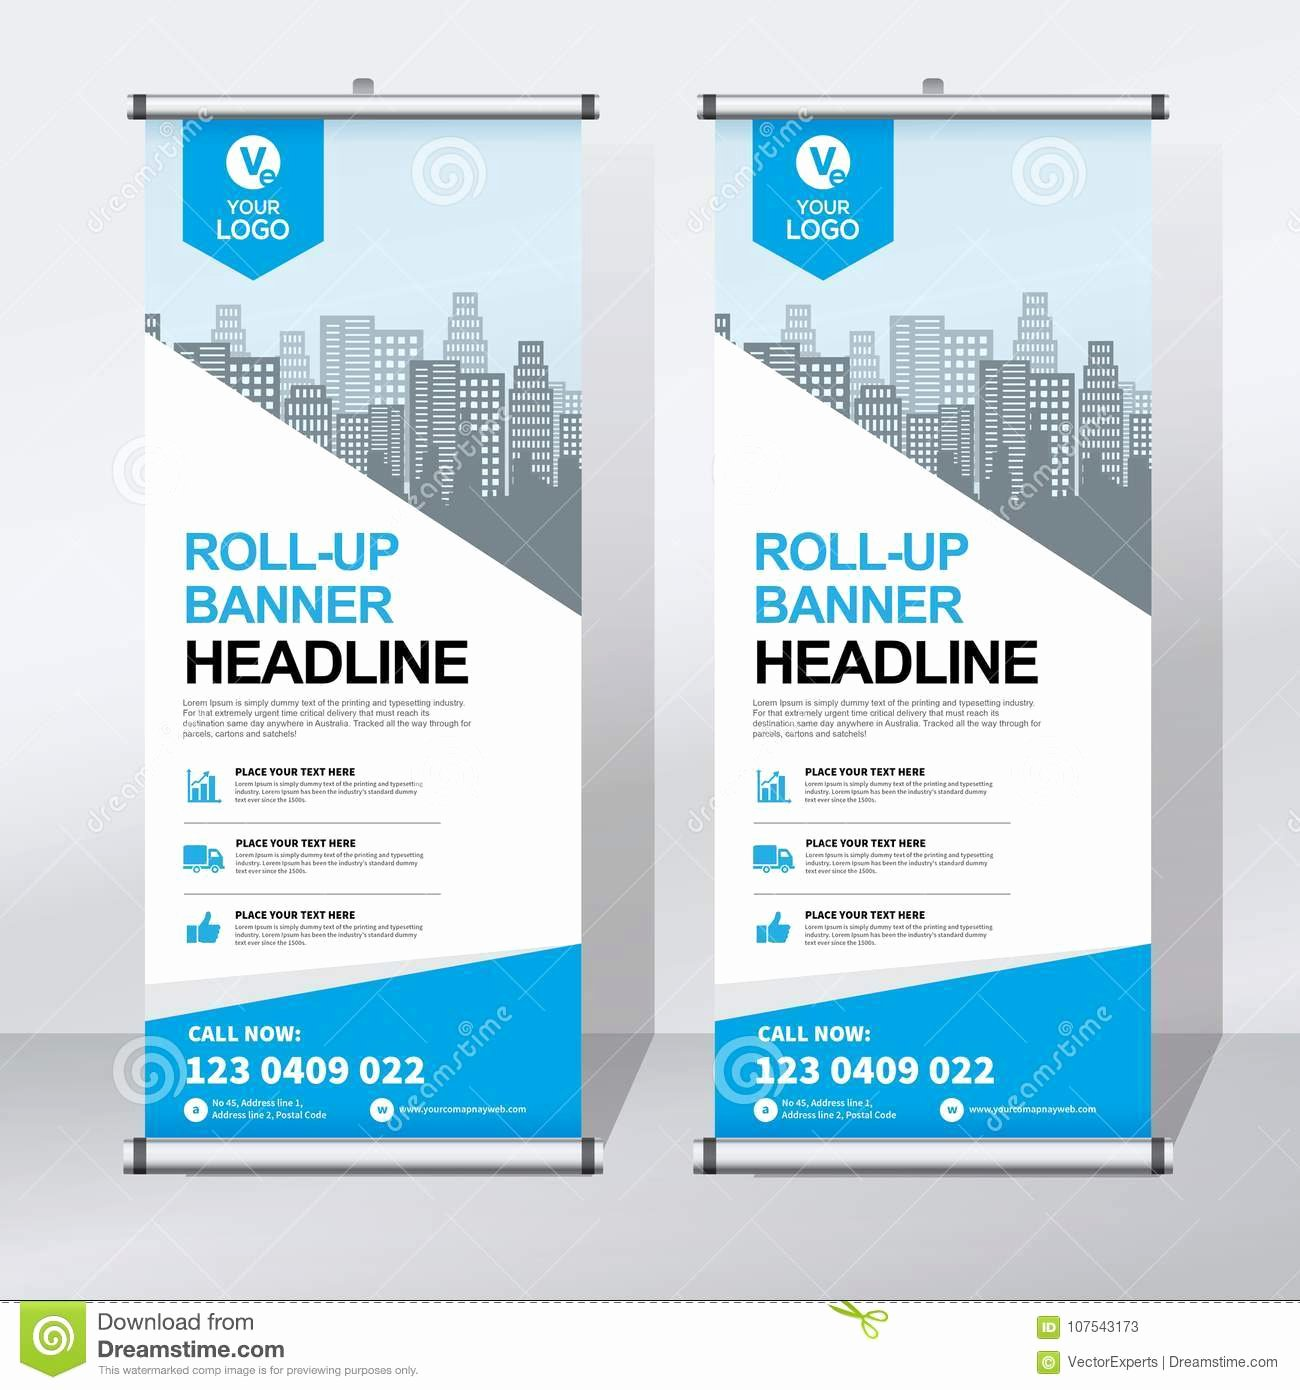 Retractable Banner Design Templates Inspirational Roll Up Banner Design Template Vertical Abstract Background Pull Up Design Modern X Banner